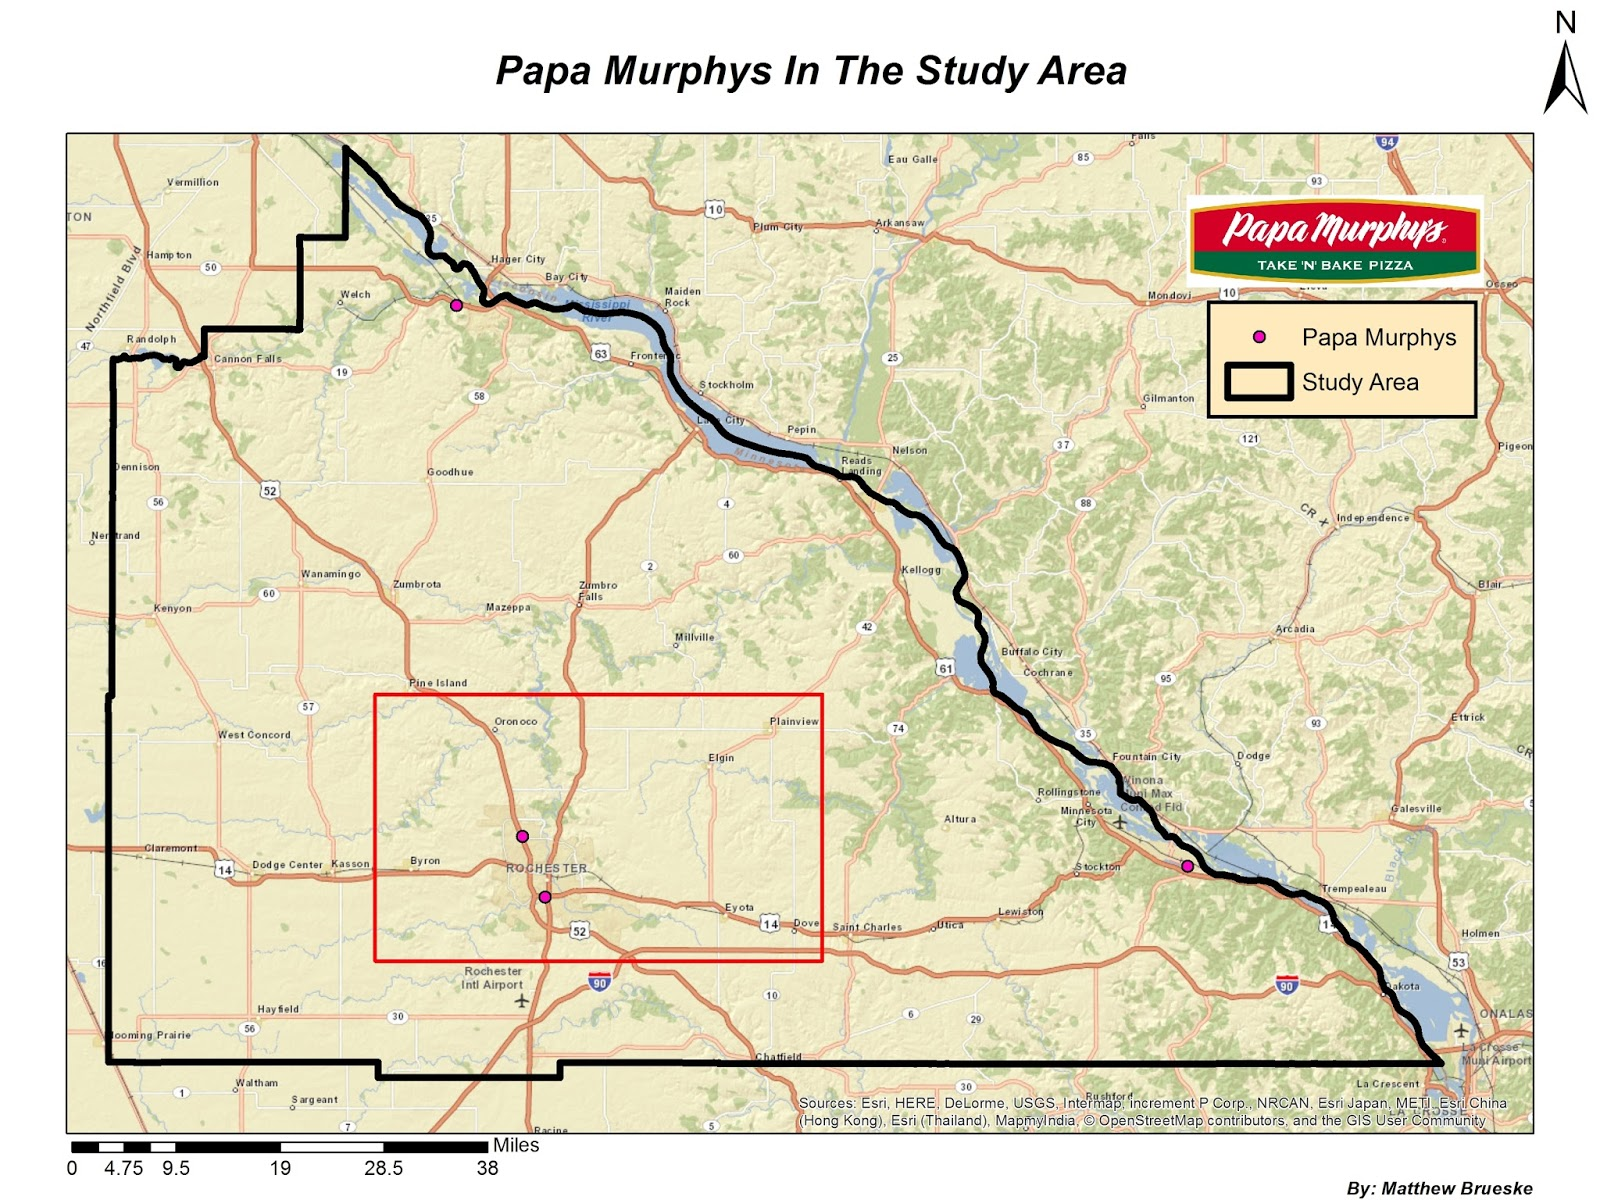 this map shows the greater study are for developing a new papa murphy s store the red box within the study area shows the specific area of where a new